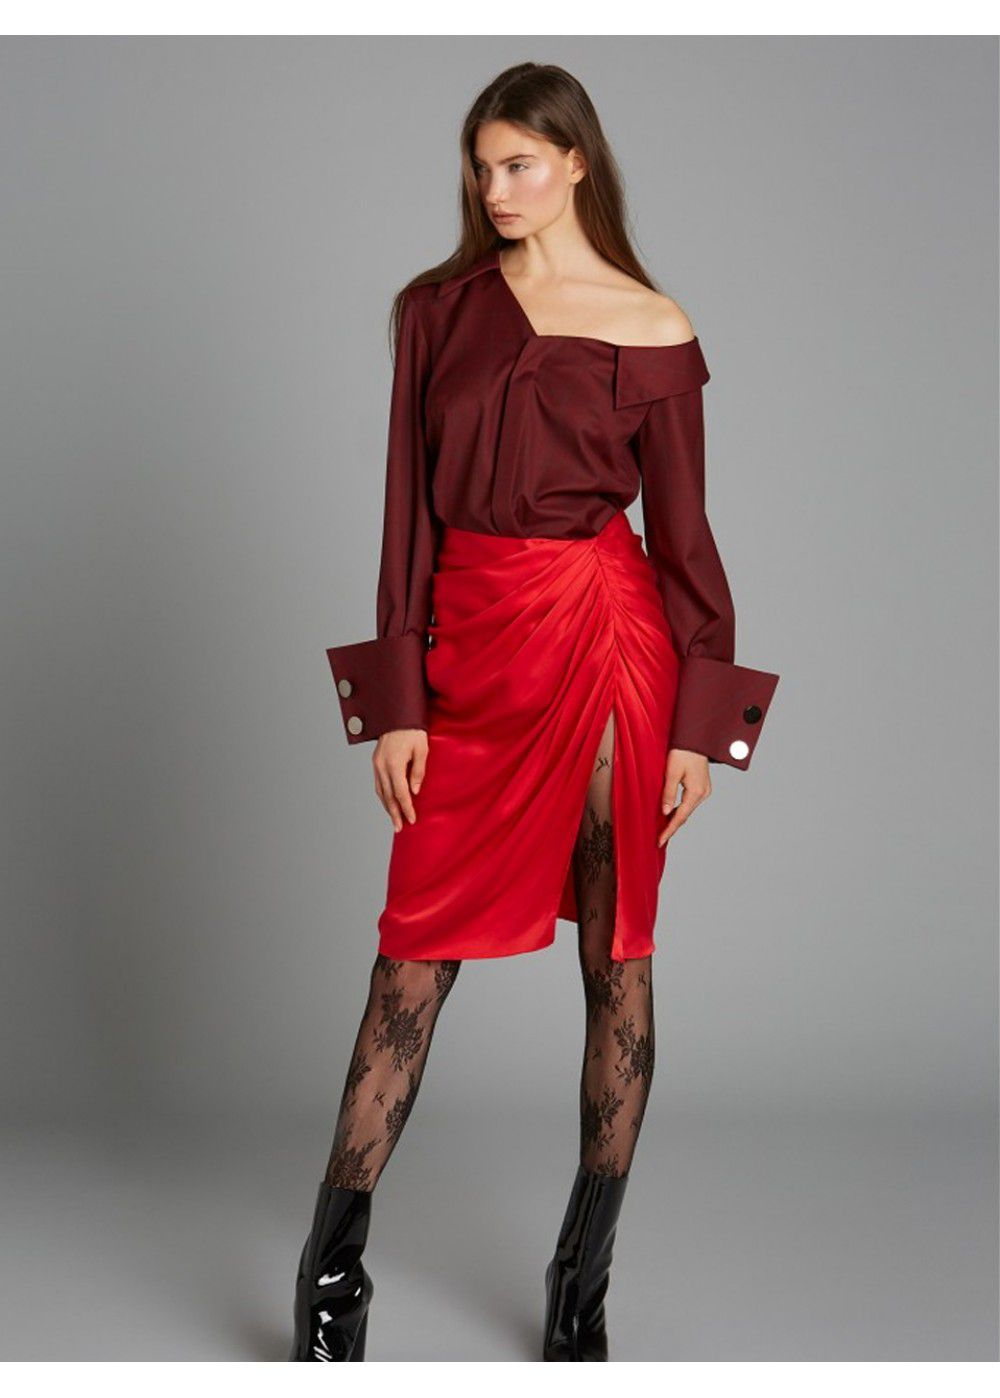 Vatanika One Shoulder Shirt in Burgundy